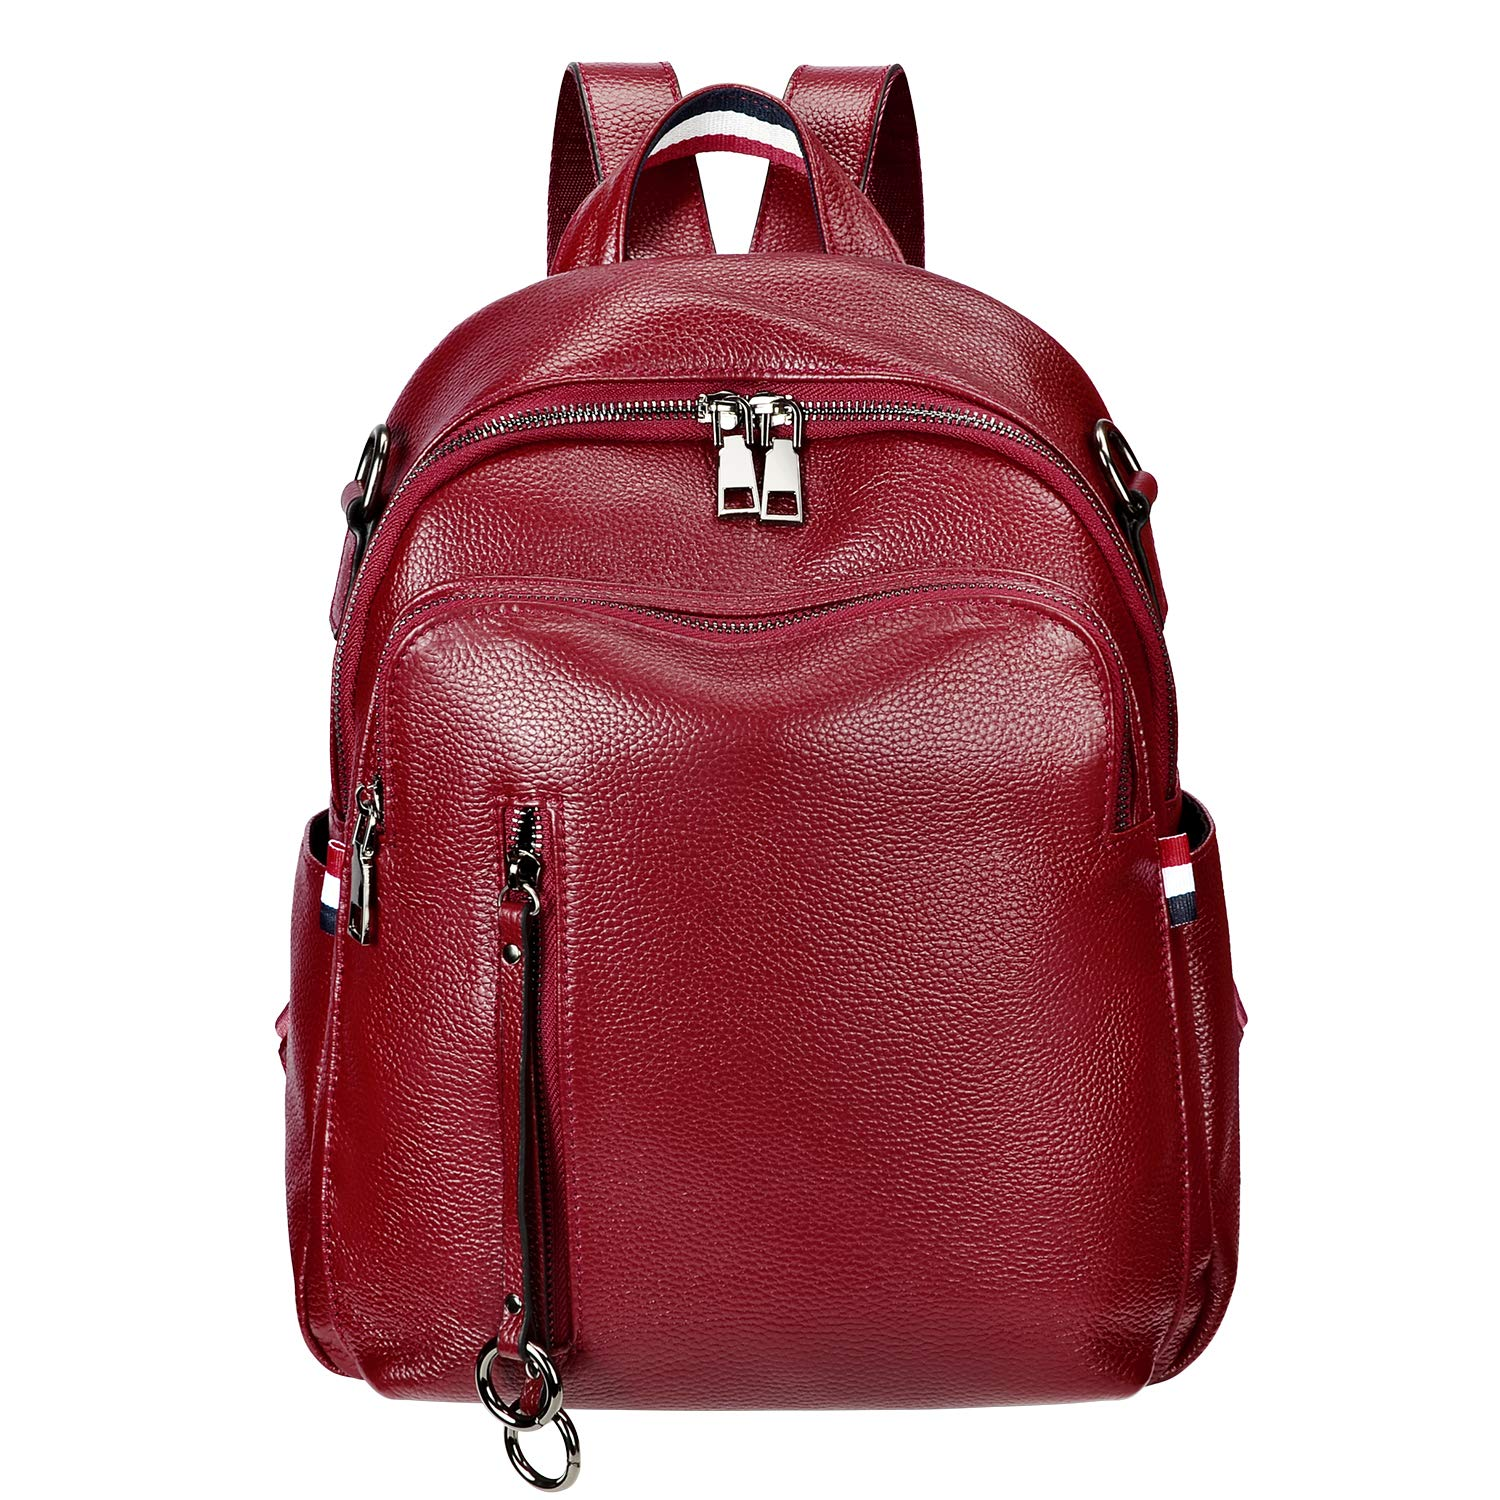 ALTOSY Fashion Genuine Leather Backpack Purse for Women Shoulder Bag Casual Daypack (S9, Red Wine) by ALTOSY